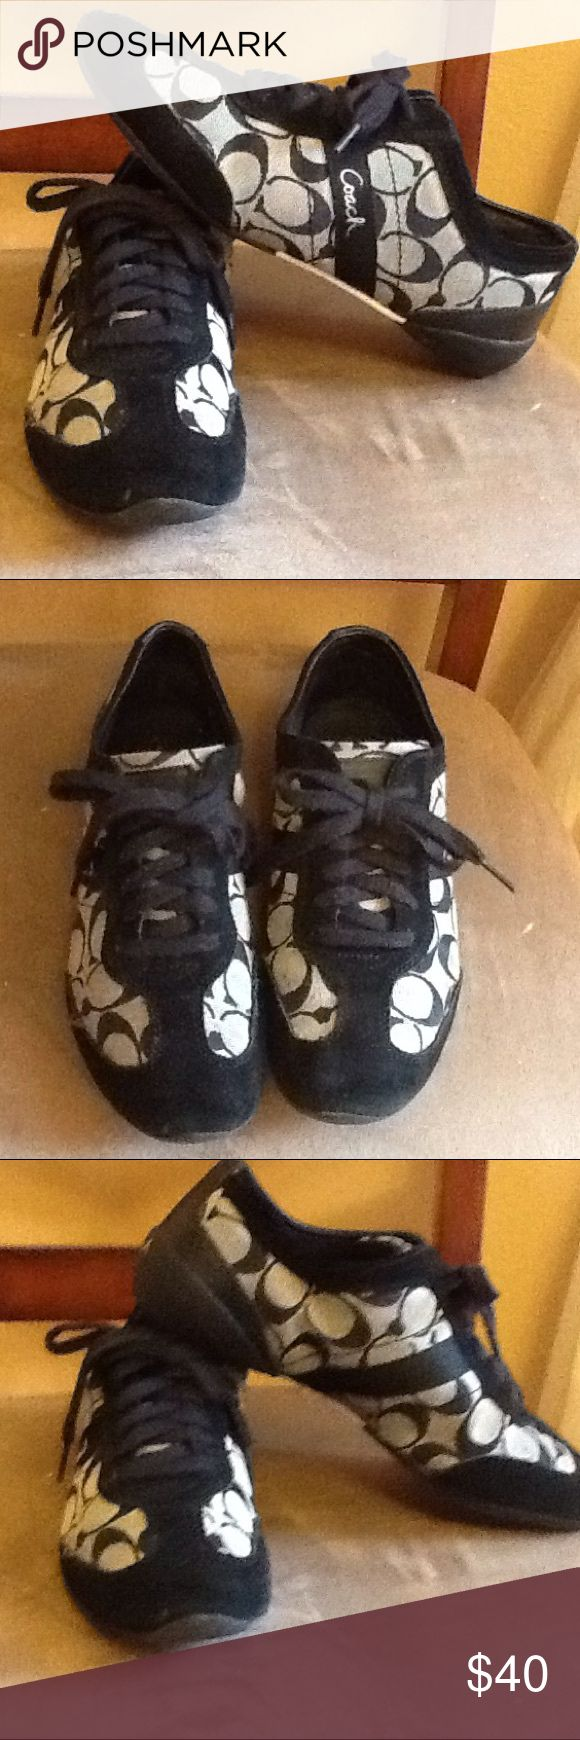 "Coach Tennis Shoes Black coach tennis shoes. Shoes are in great condition! Slightly worn 'coach' on the backs and marking on right she near tie (pictures shown). Fabric with suede and leather accents. ""Coach"" written on side of each shoe and on backs. Coach Shoes Sneakers"